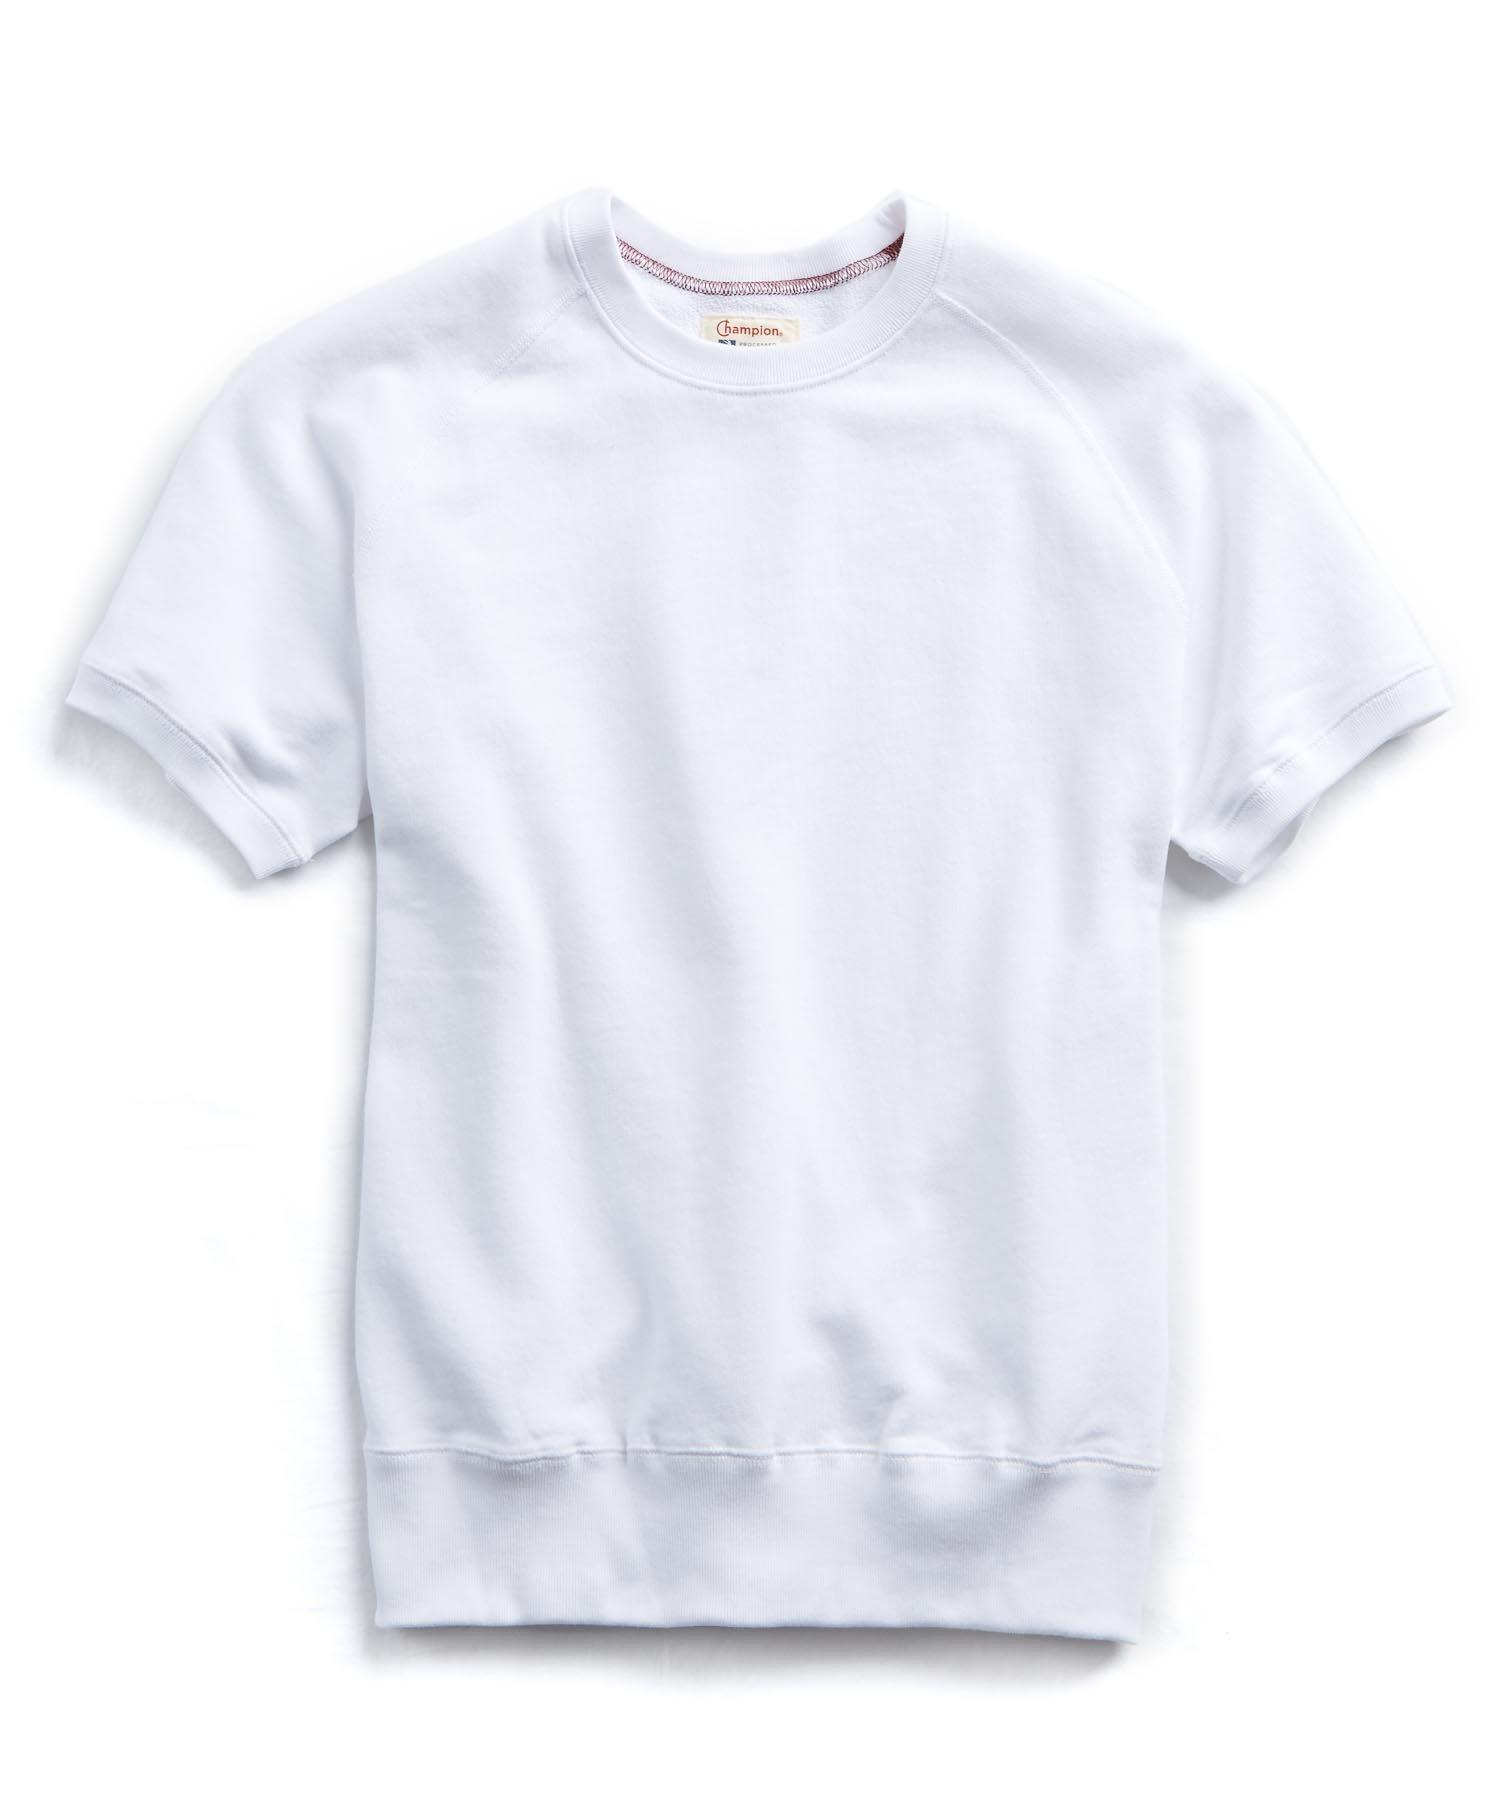 d629475a Todd Snyder Terry Short Sleeve Sweatshirt In White in White for Men ...